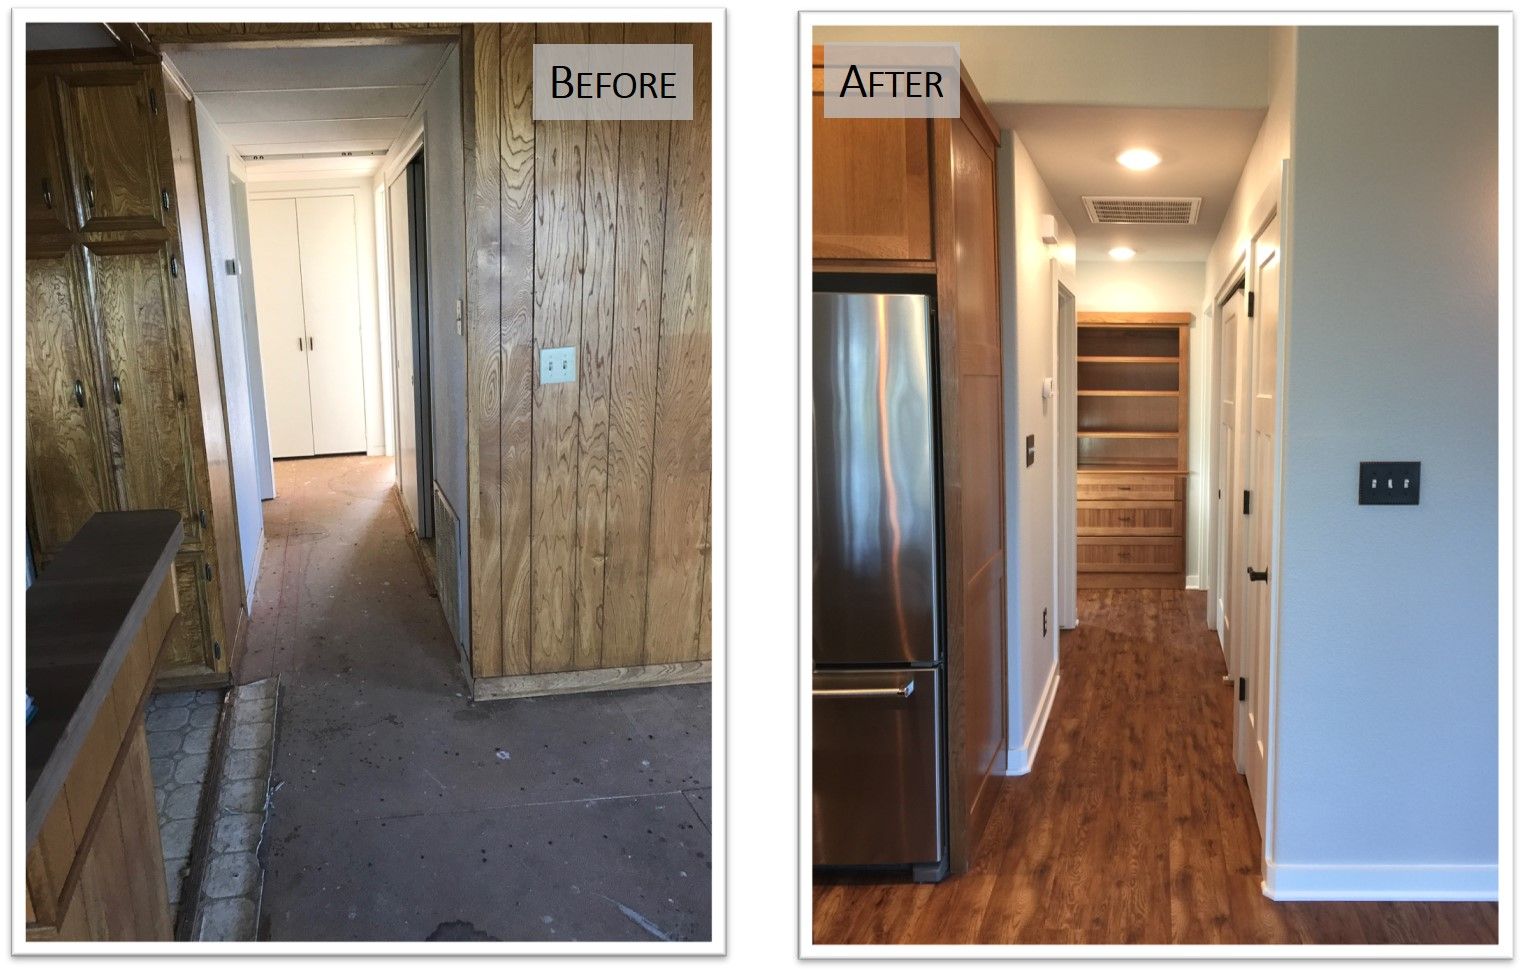 910 PLL, Interior Hall, Before and After, Bear Creek Homes.jpg